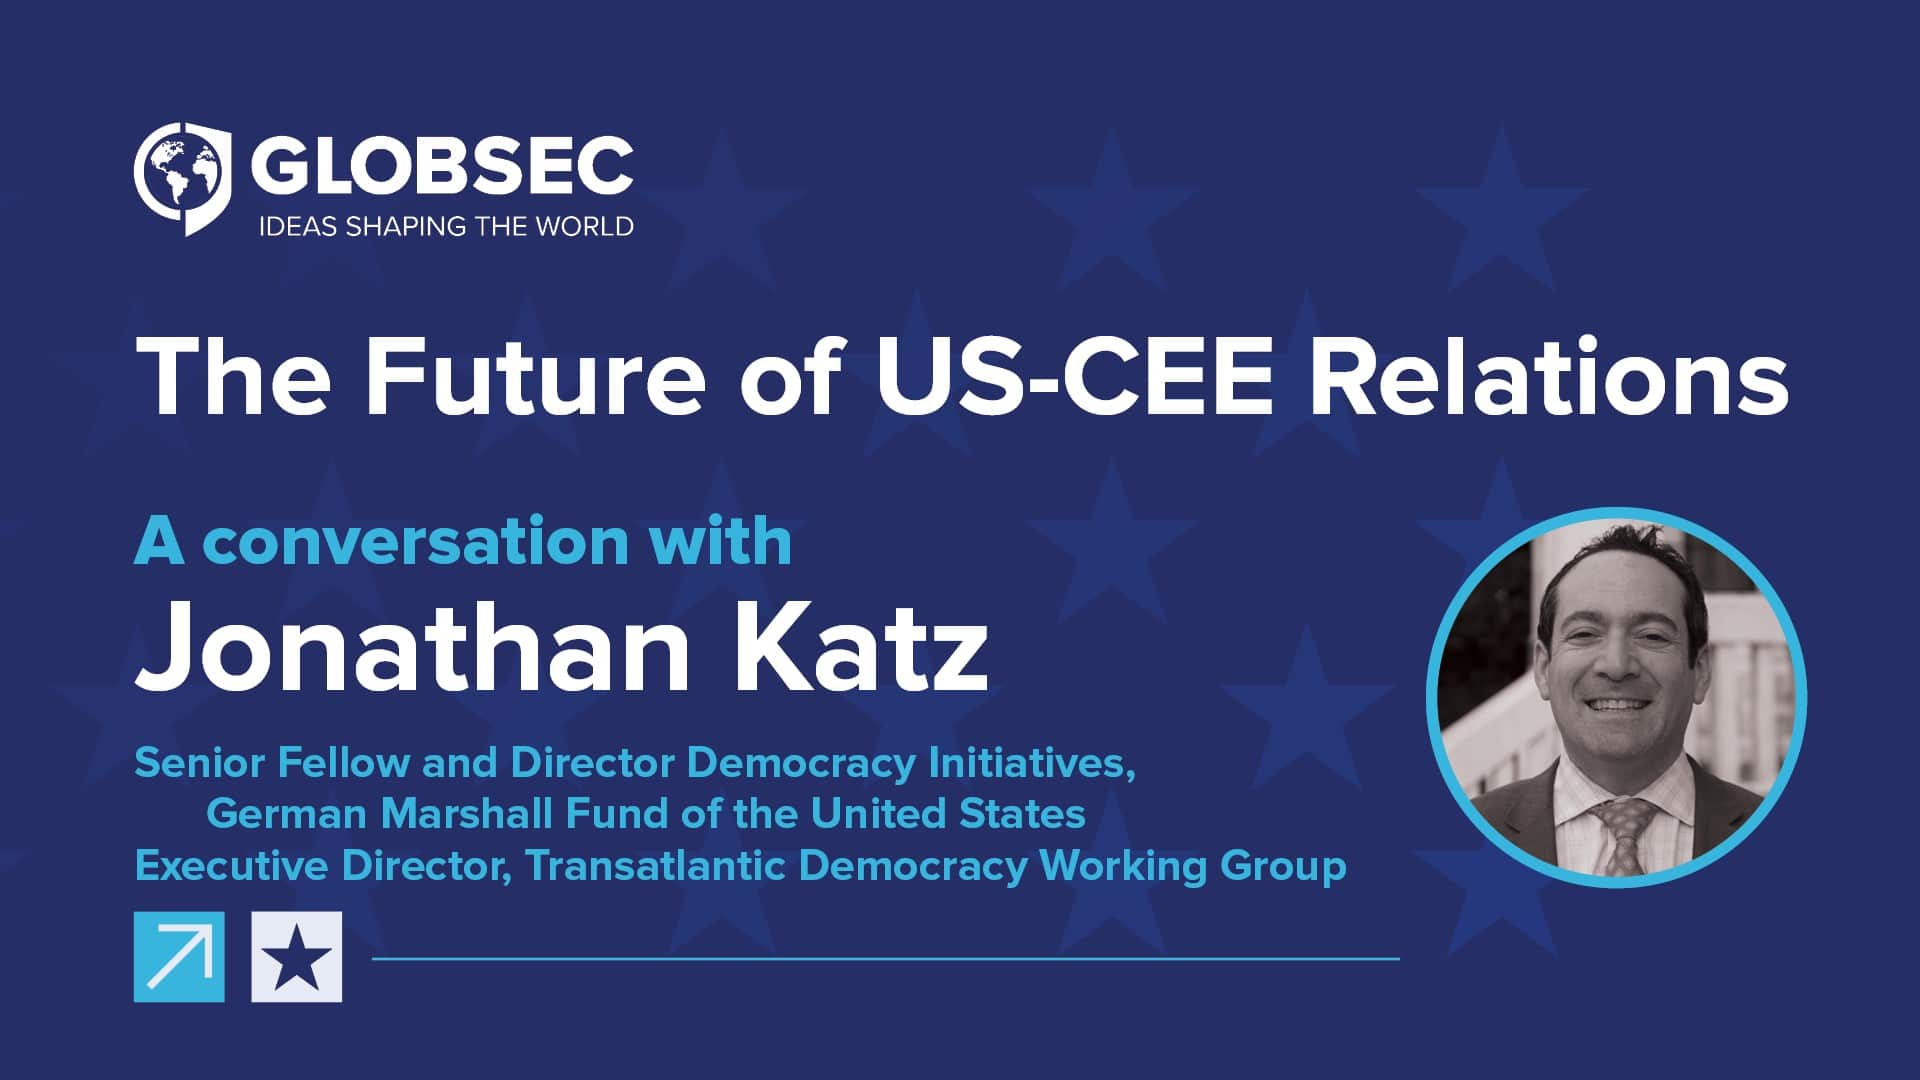 The Future of US-CEE Relations: Conversation with Jonathan Katz